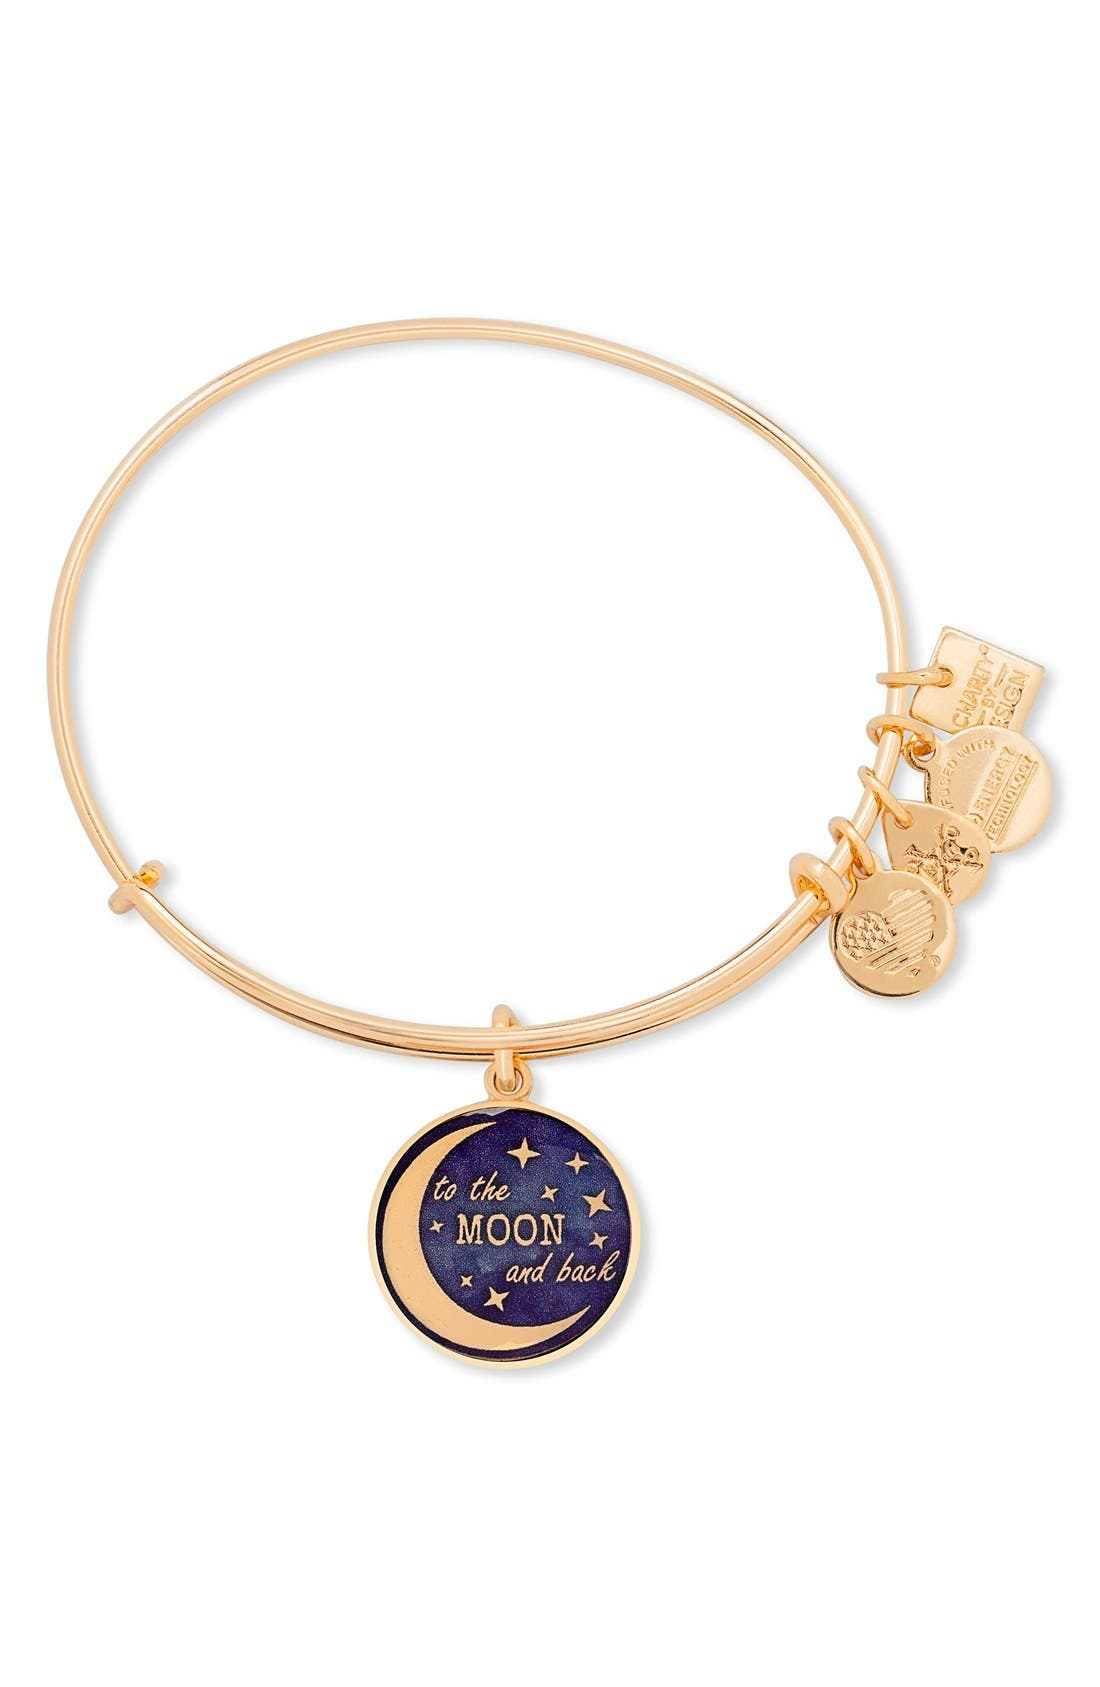 Alternate Image 1 Selected - Alex and Ani Stellar Love 'To the Moon and Back' Adjustable Wire Bangle